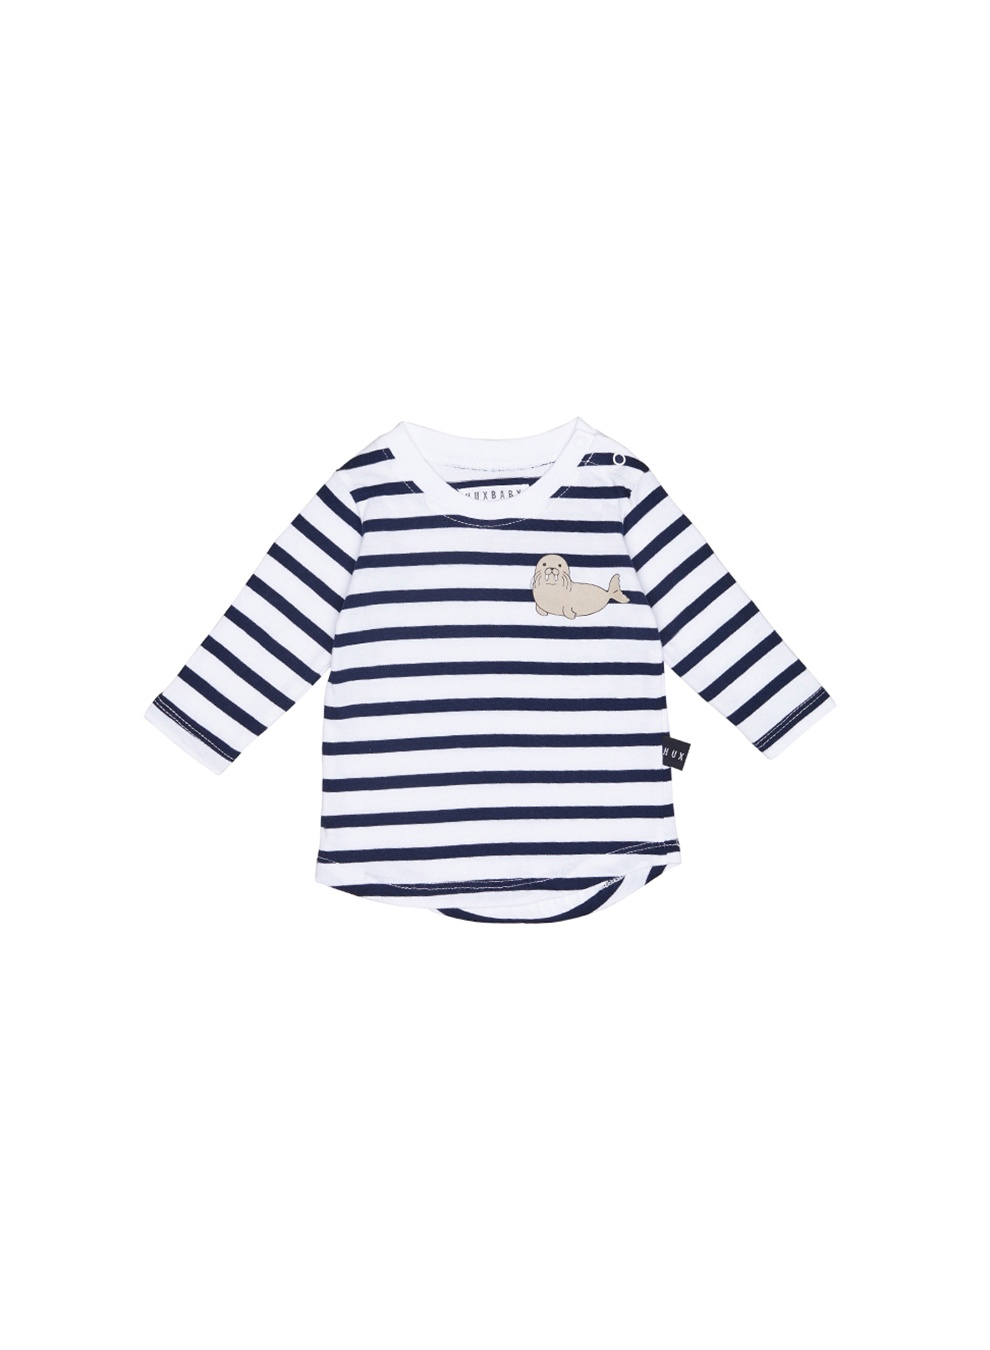 NAVY + WHITE STRIPE L/S TOPS